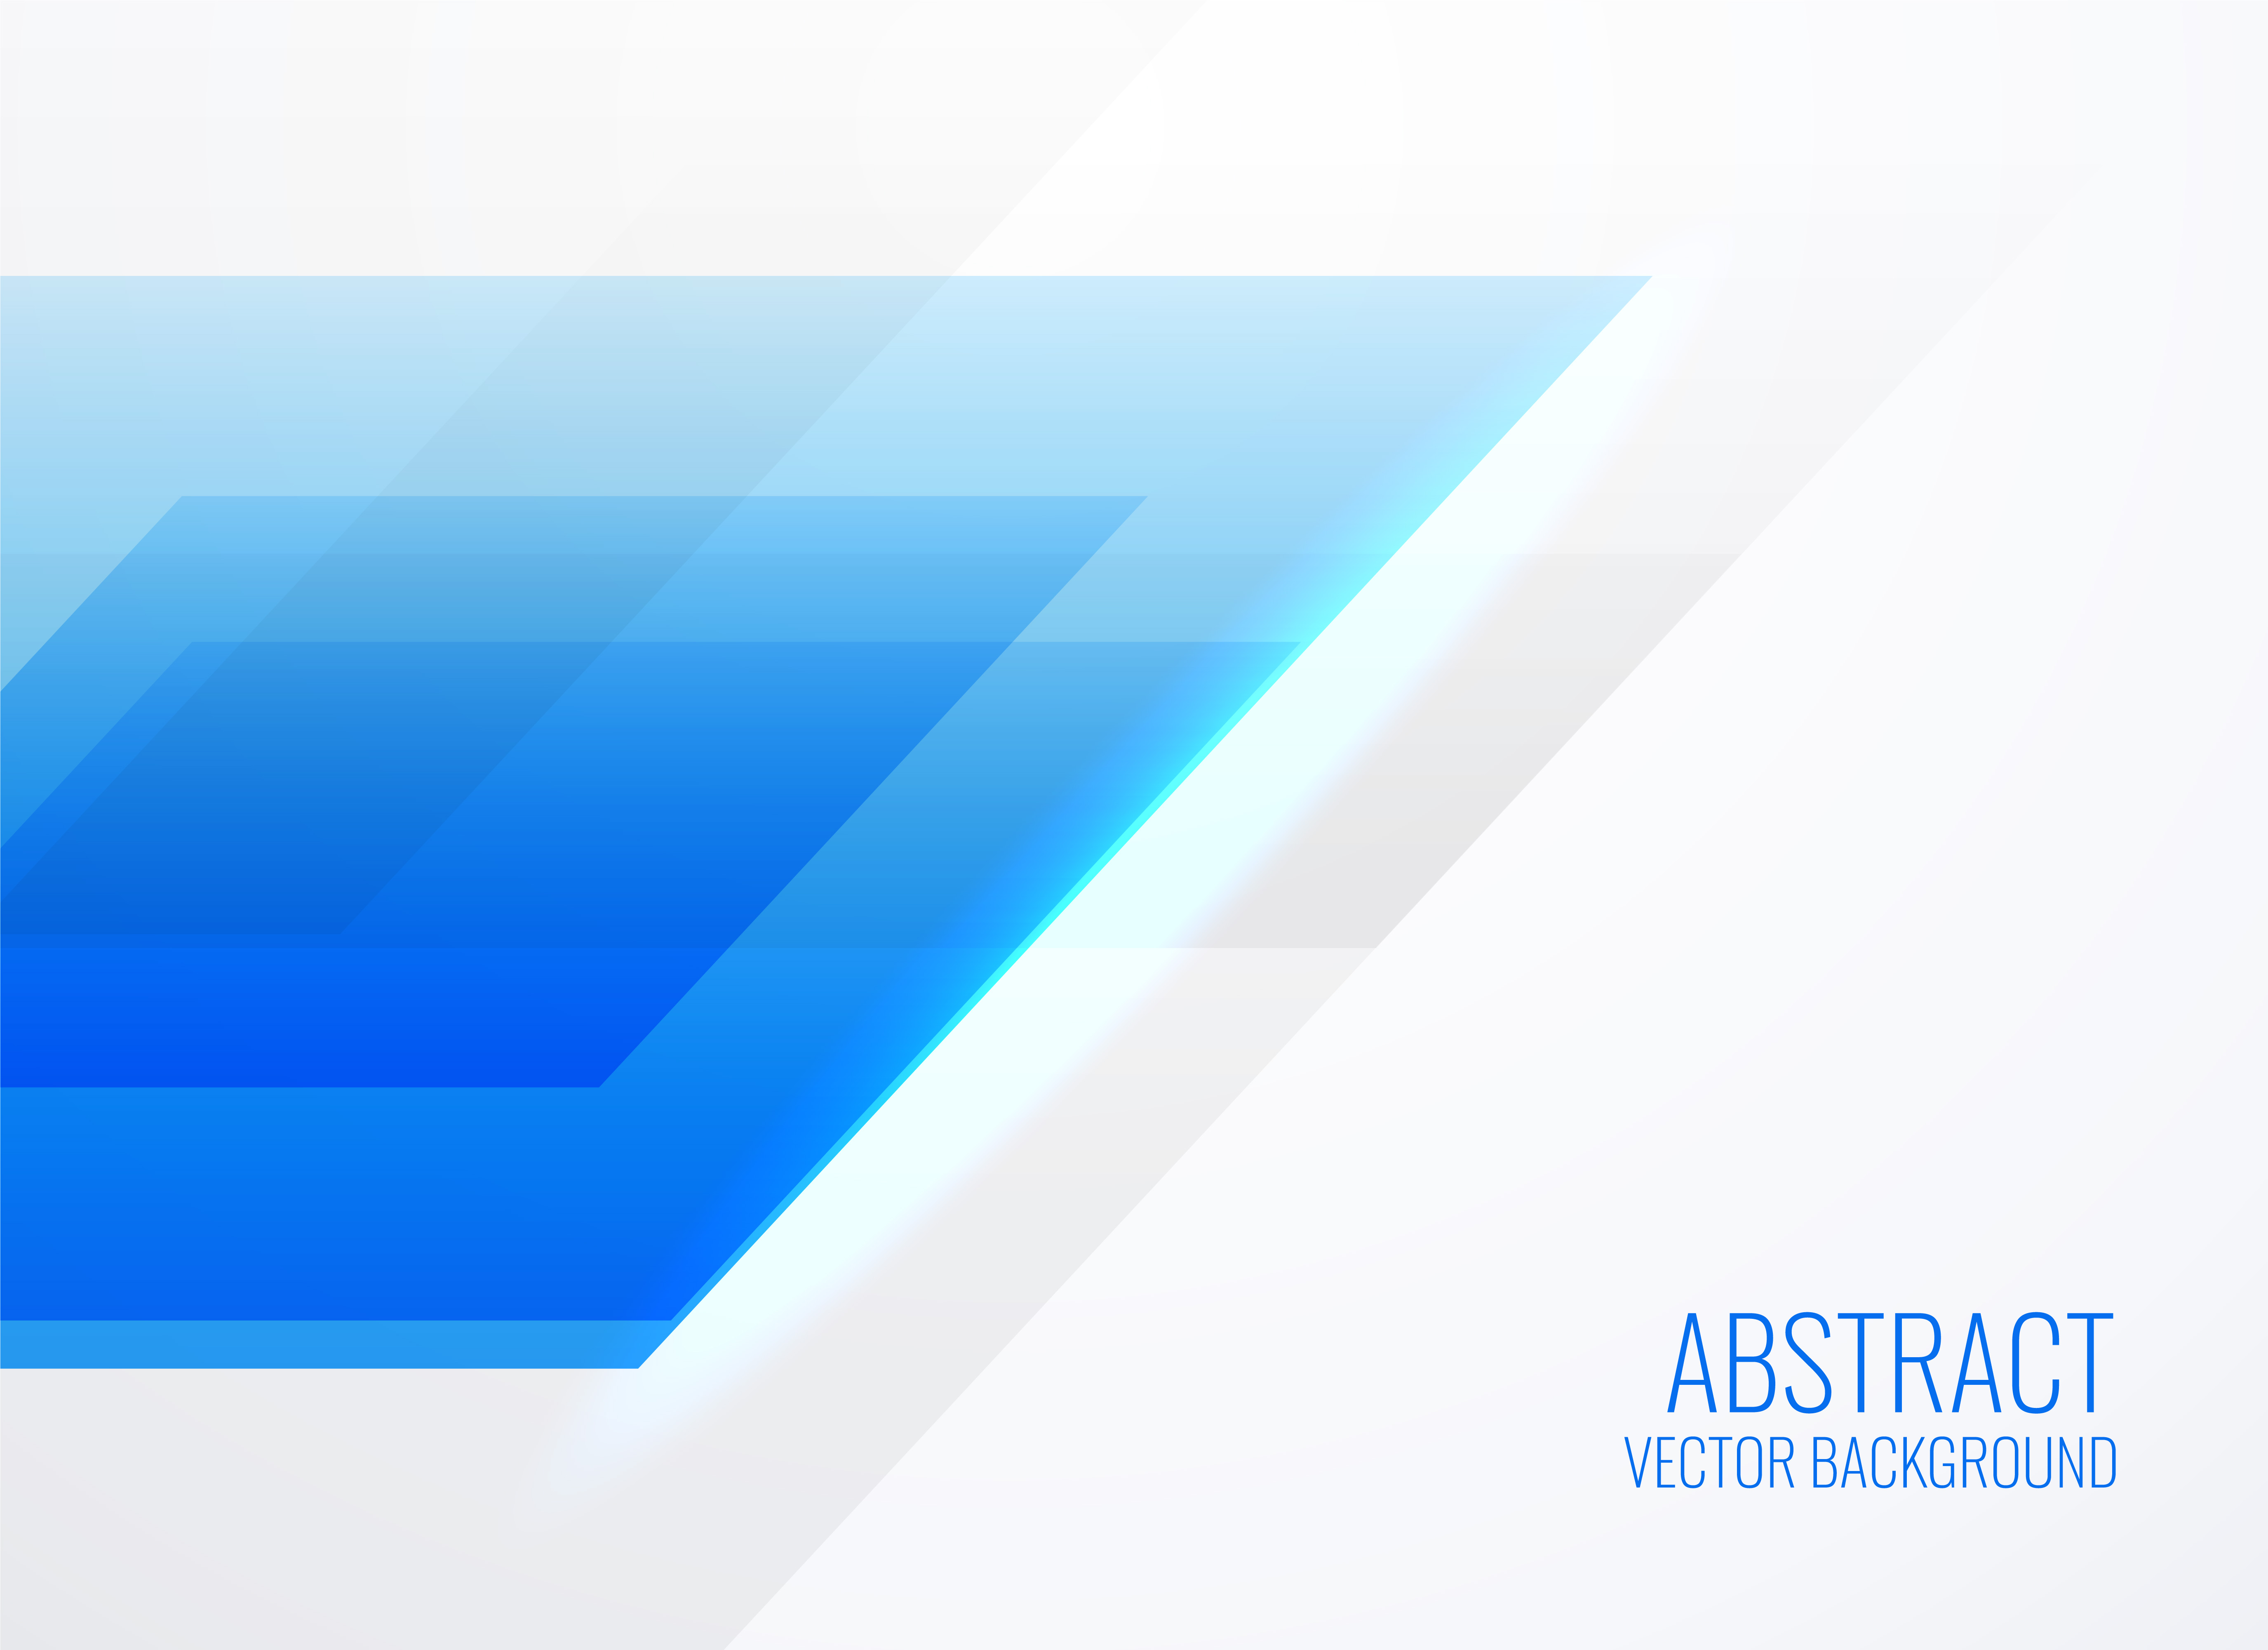 abstract geometric blue template design - download free vector art